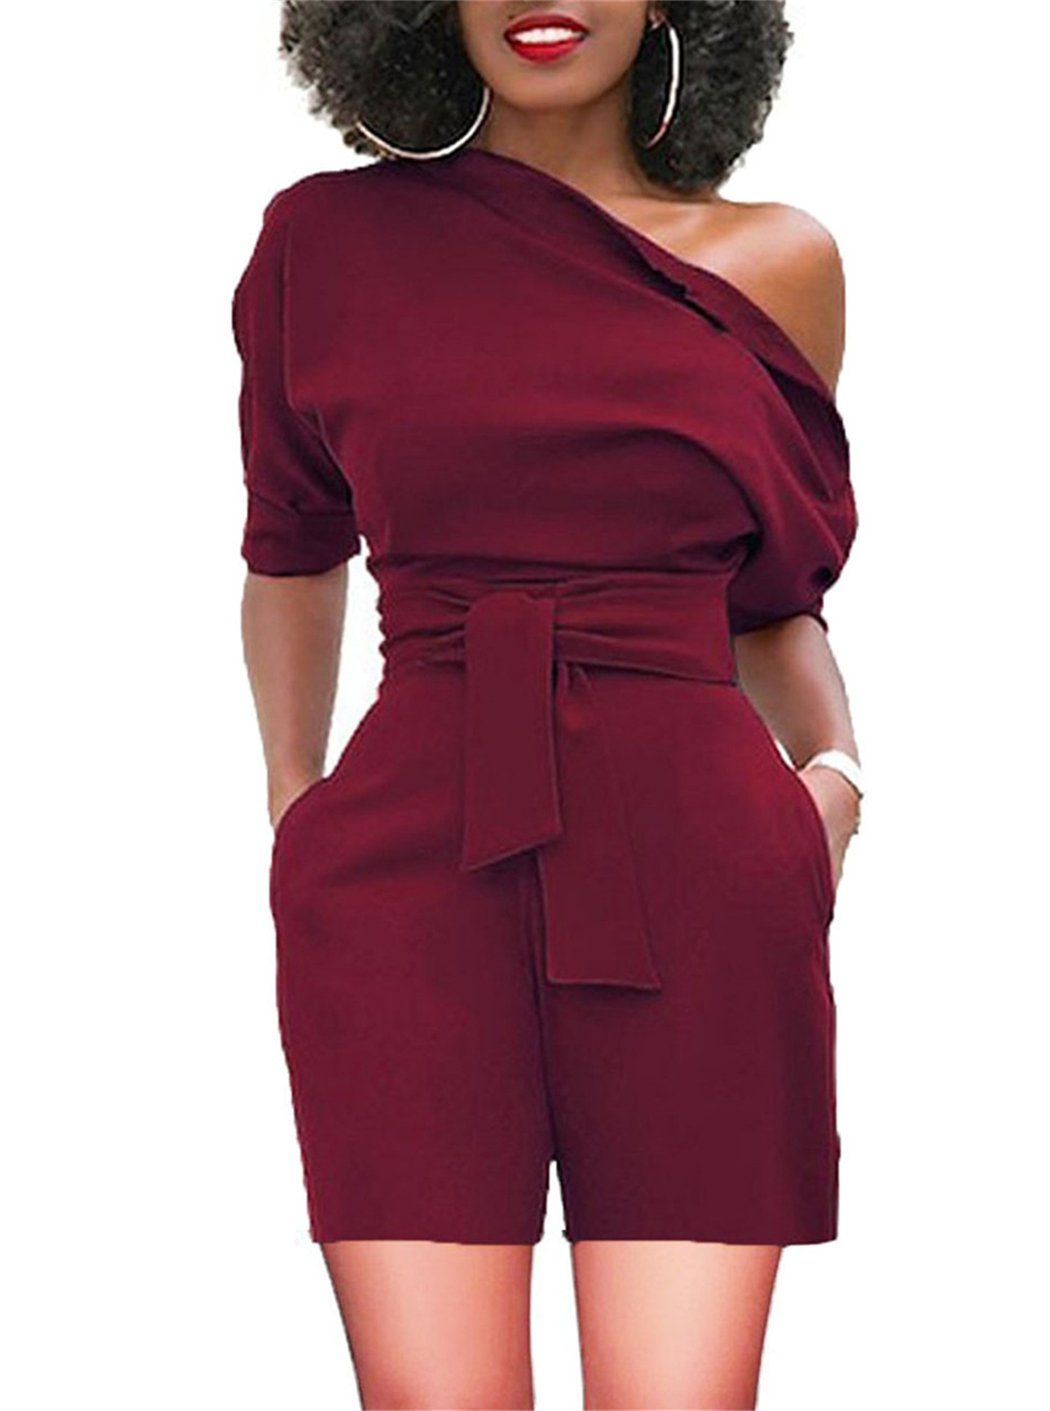 BETTE BOUTIK Women's Casual Casual Short Jumpsuits Overalls Front Tie with Pockets WineRed Small